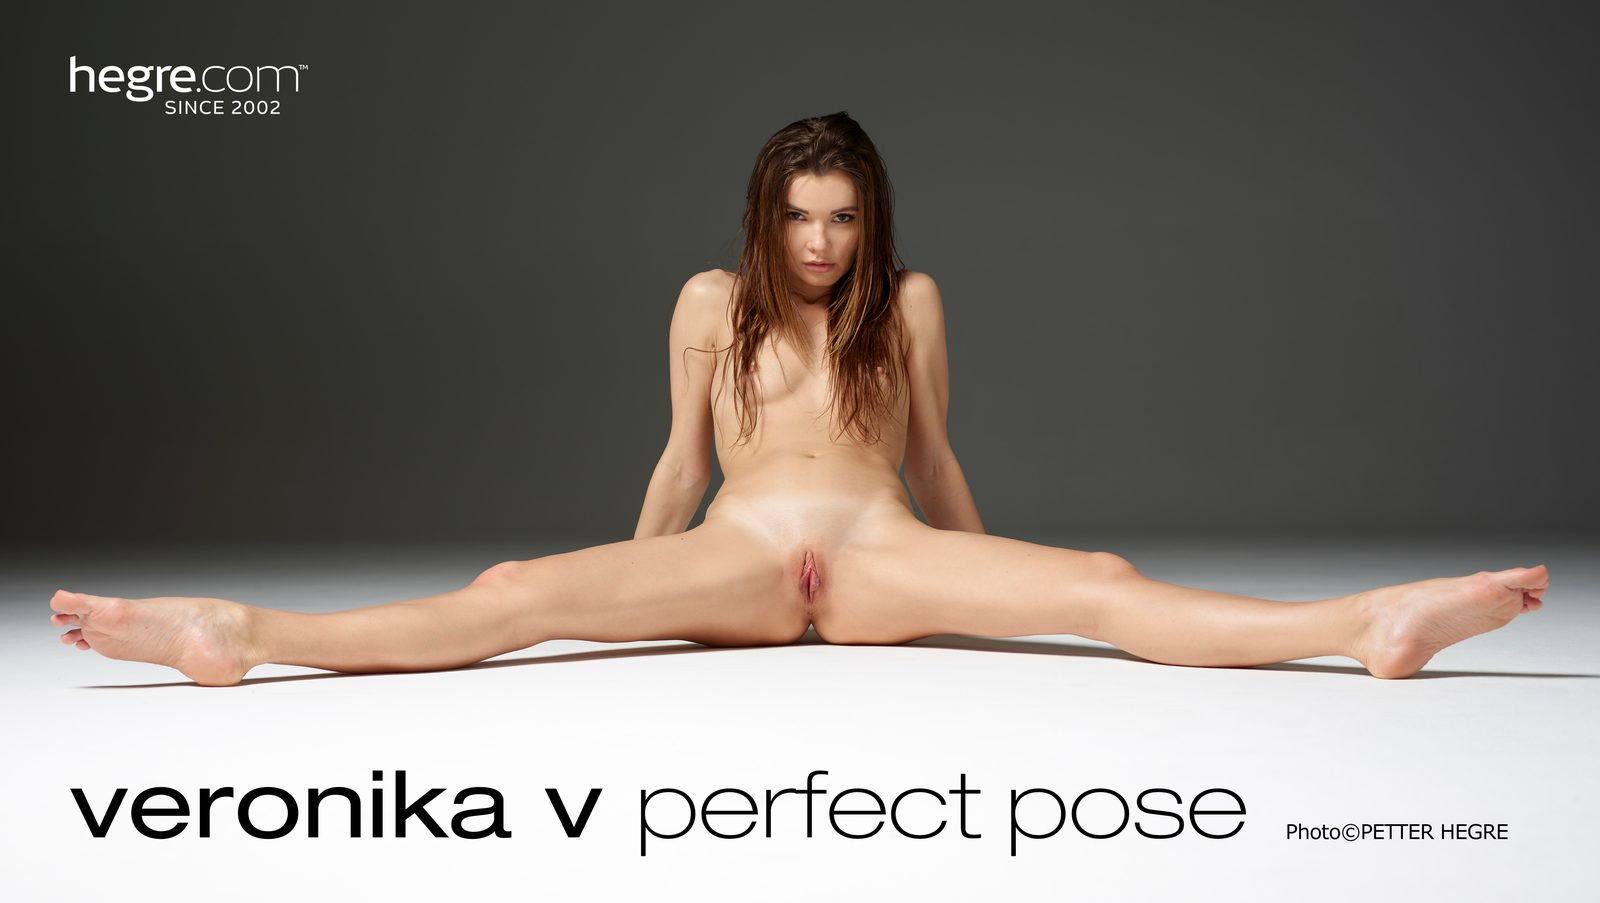 No Way Out Porn Reparto veronika v - hegre